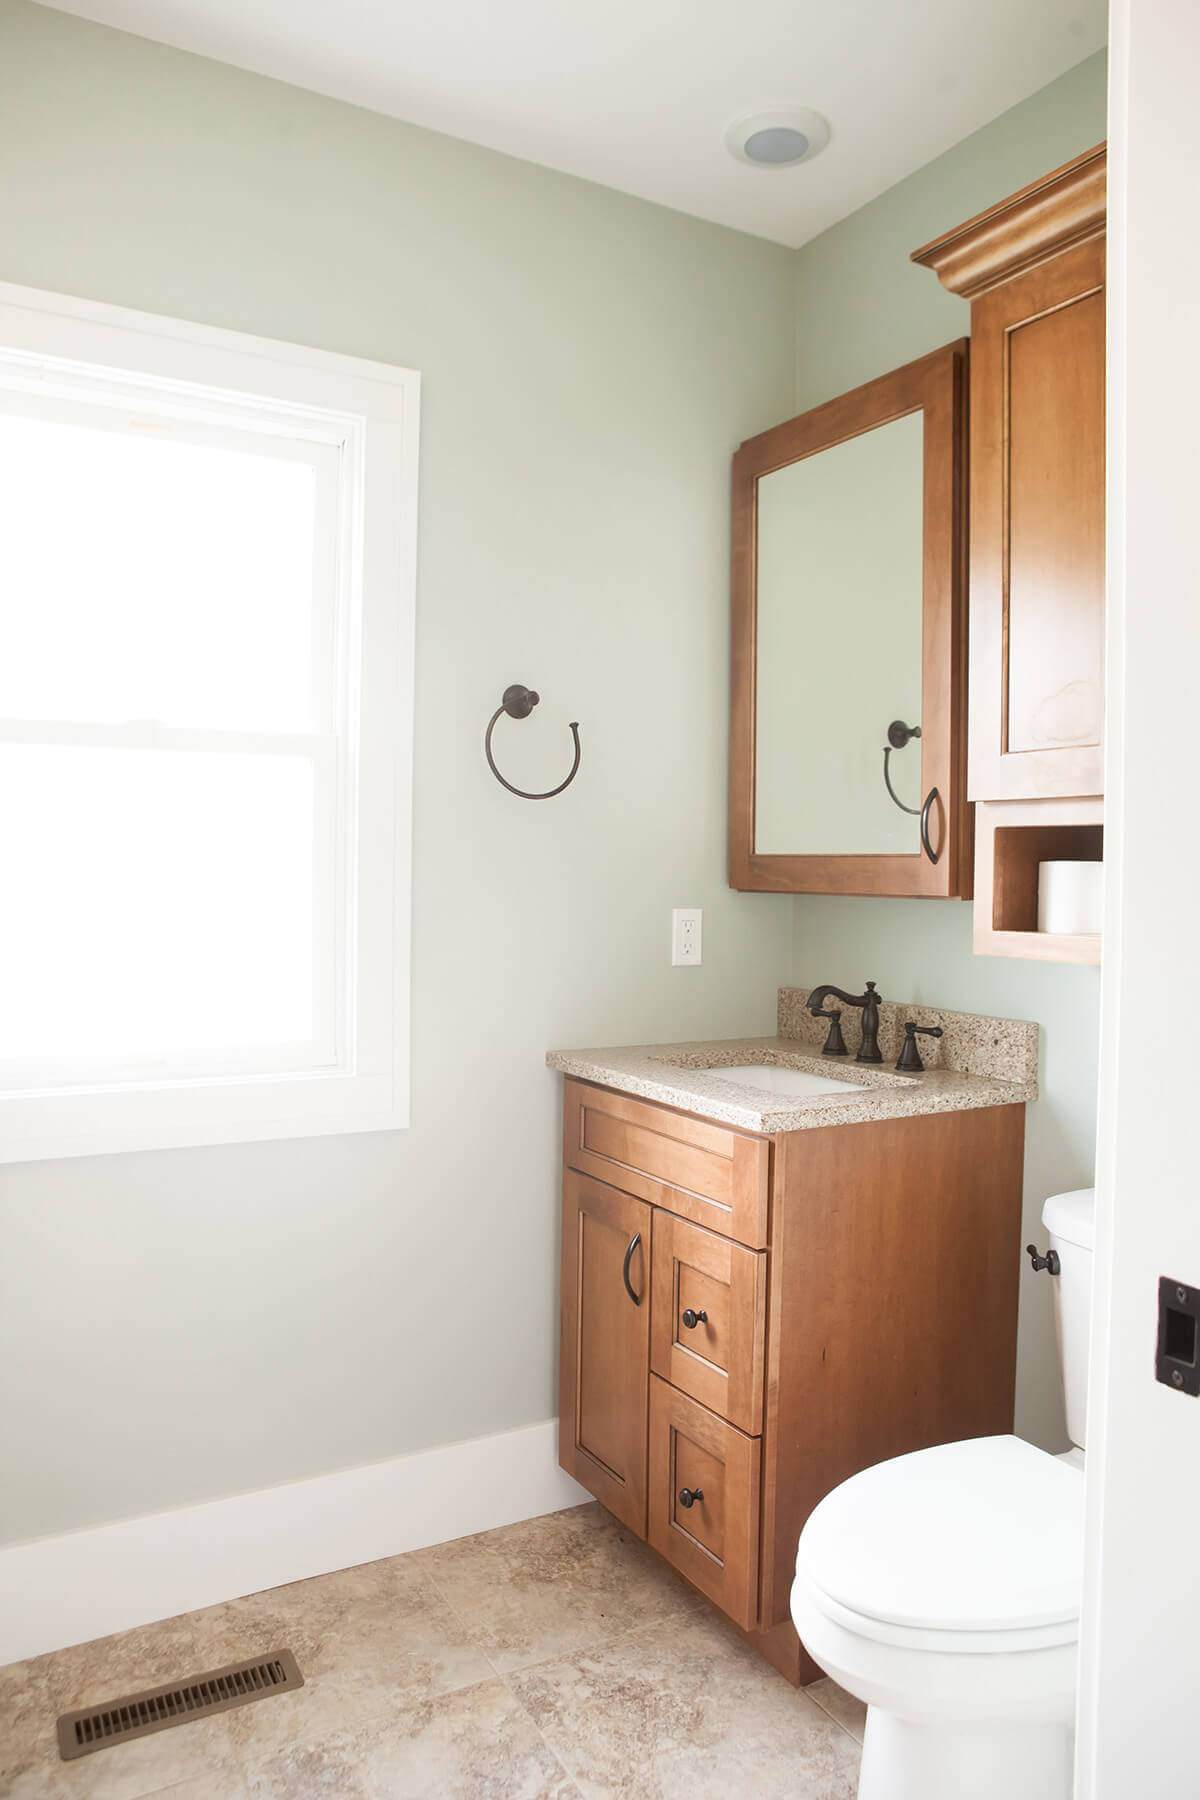 bathroom sink and mirror placed in the corner with a window letting in natural light